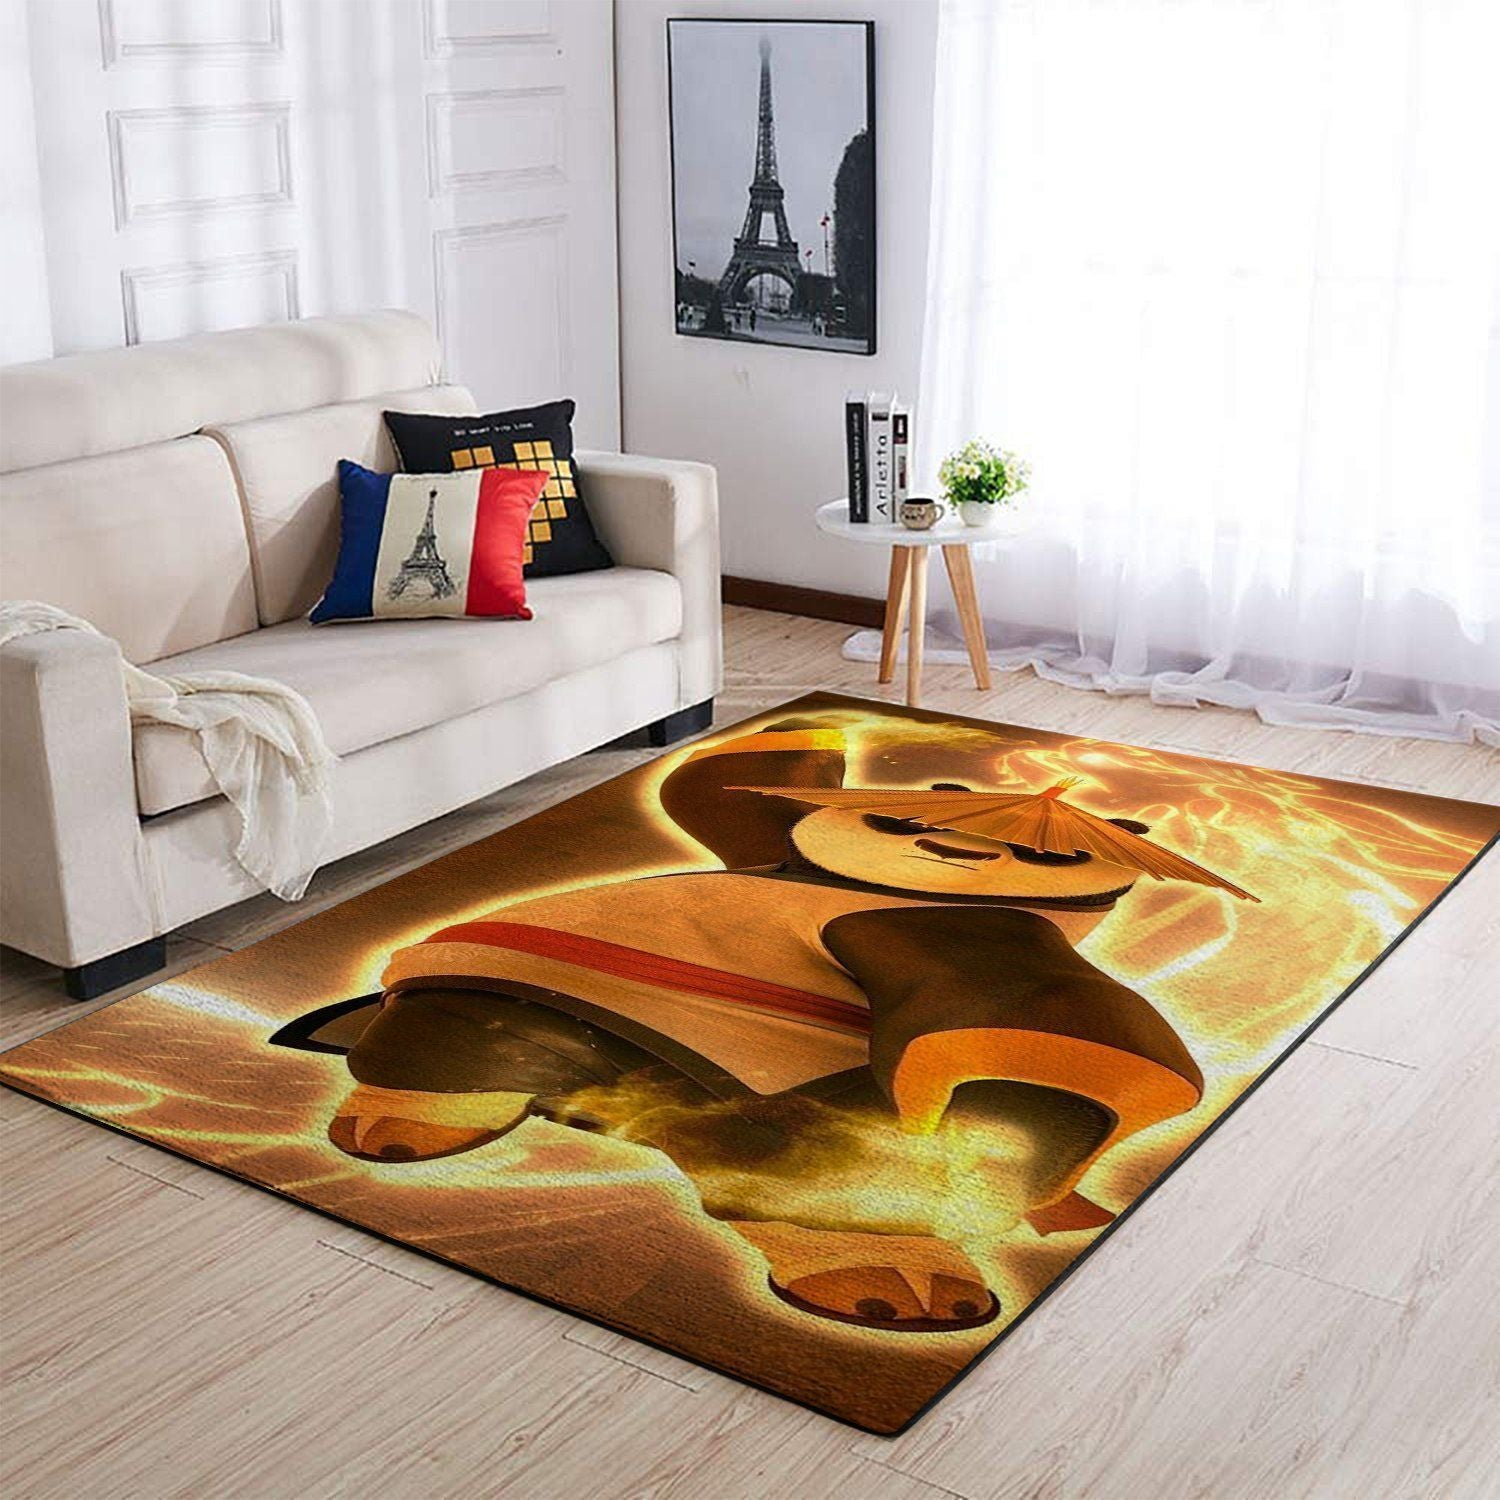 Kungfu Panda Area Rugs, Movie Living Room Carpet, Custom Floor Decor 2